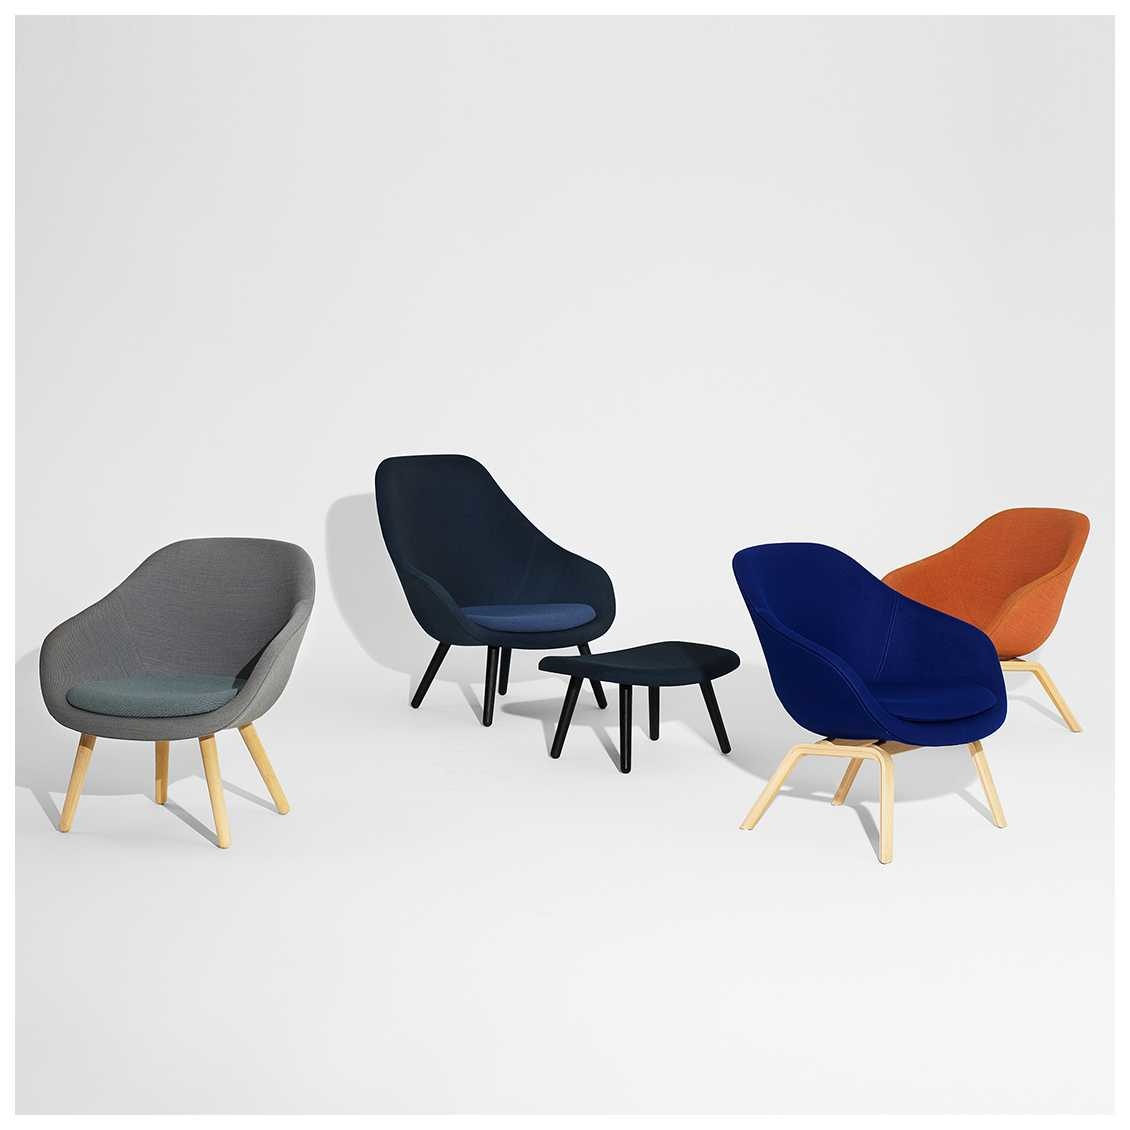 Surprising About A Lounge Chair Low Aal83 Nordic New Ibusinesslaw Wood Chair Design Ideas Ibusinesslaworg